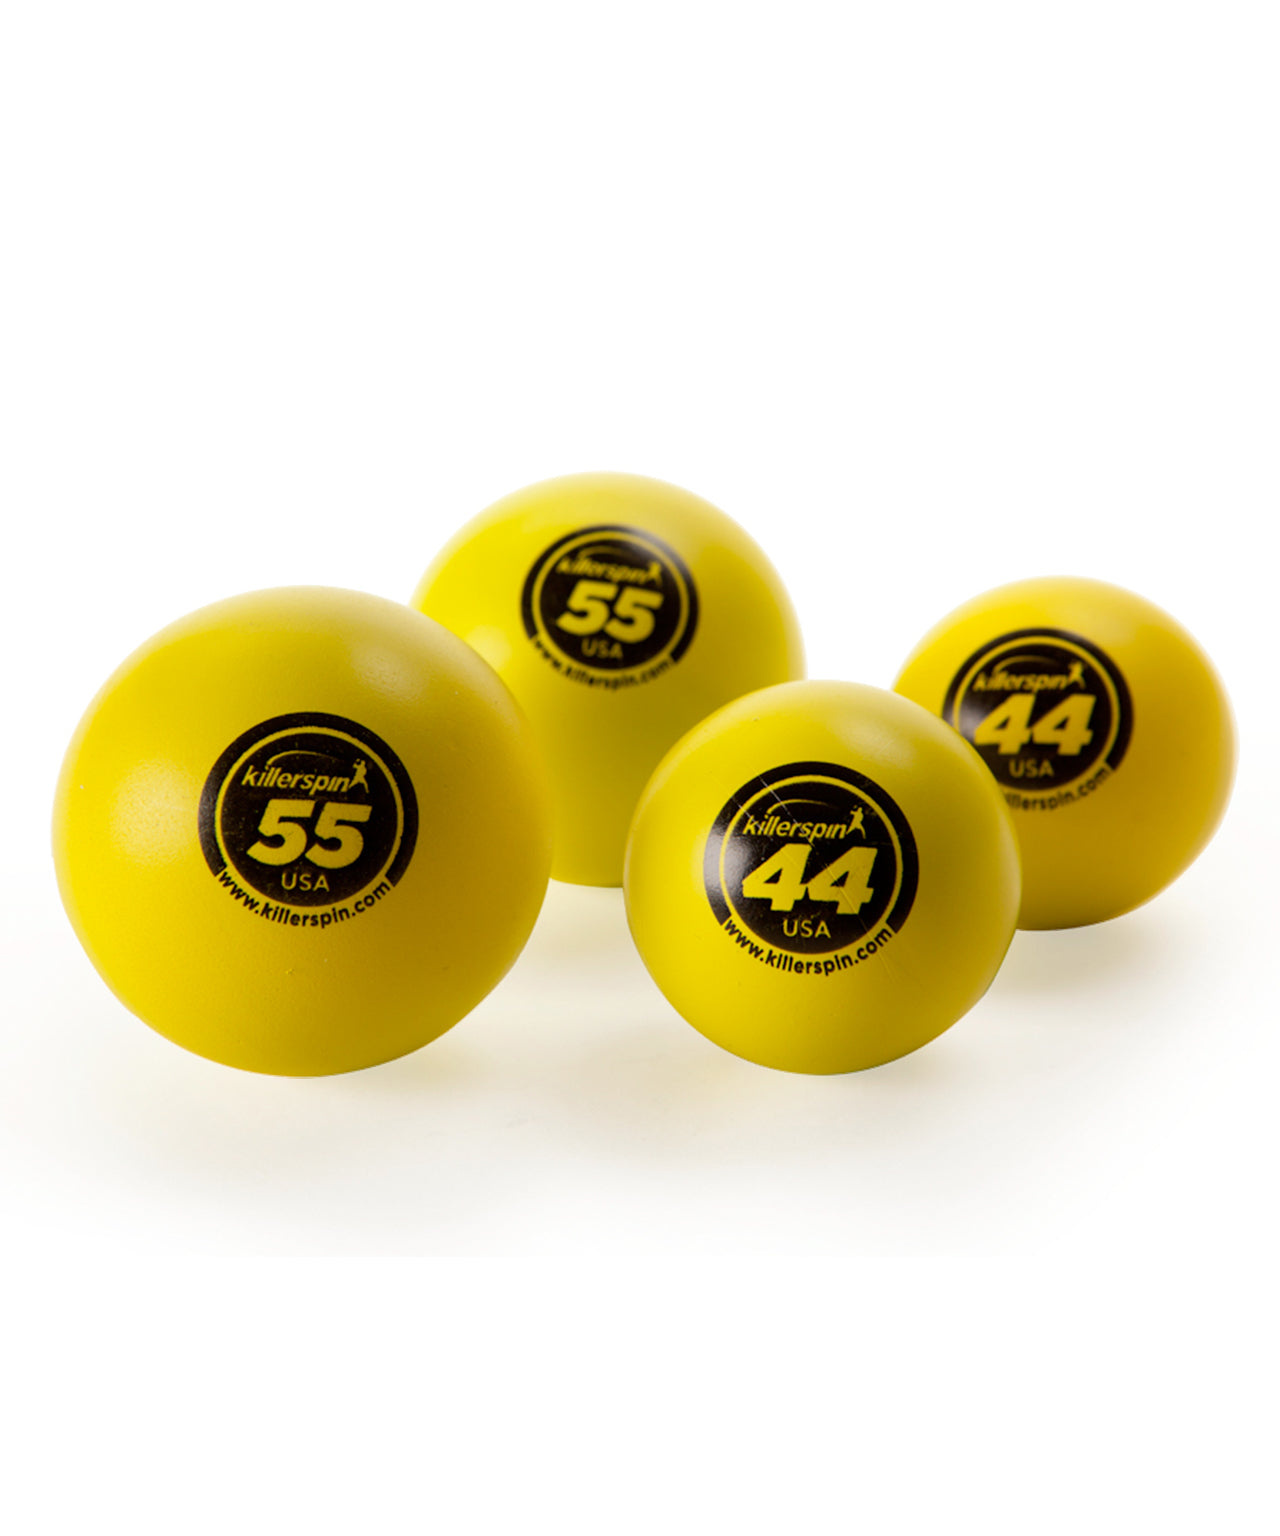 New Killerspin 2 x 44mm and 2 x 55mm Pack of Table Tennis Balls